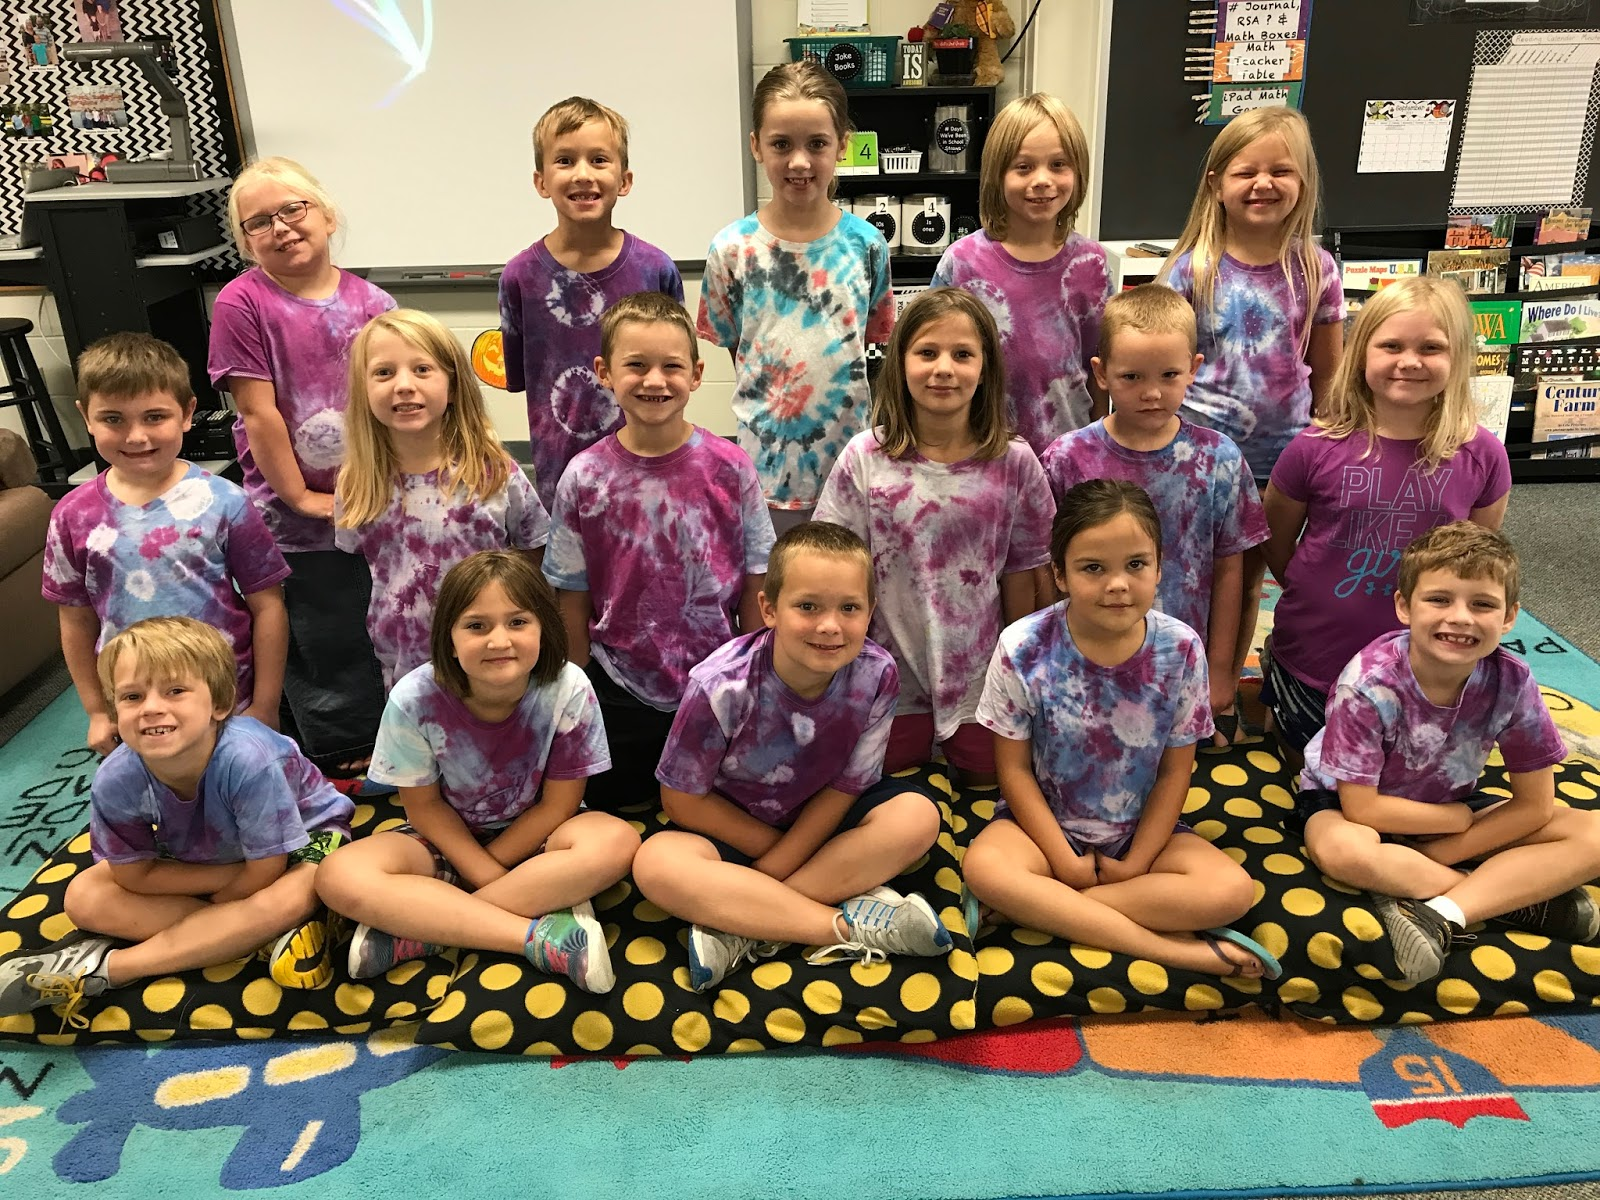 Mrs Bell S 2nd Grade Blog Tie Dye Tuesday